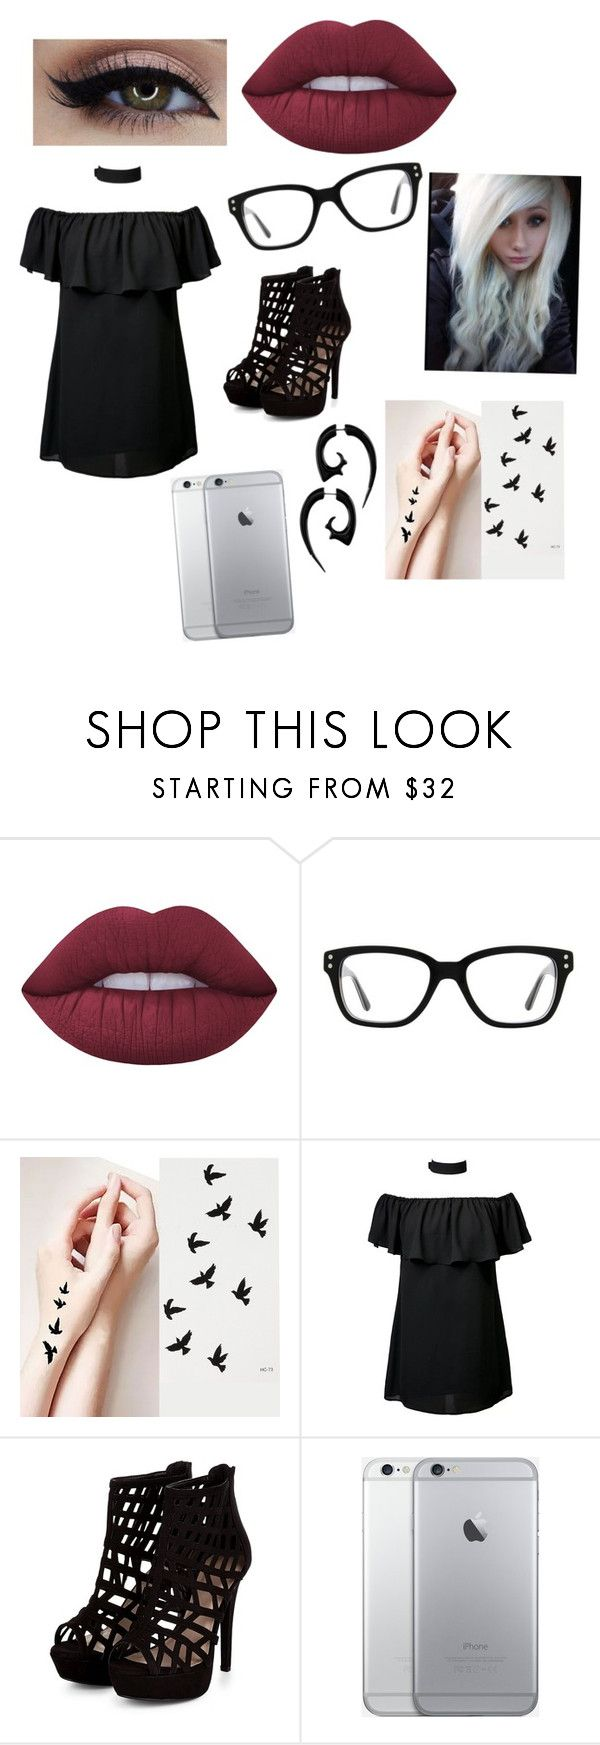 """""""Untitled #104"""" by lovemybands4ever on Polyvore featuring interior, interiors, interior design, home, home decor, interior decorating, Lime Crime, Converse and H&M"""